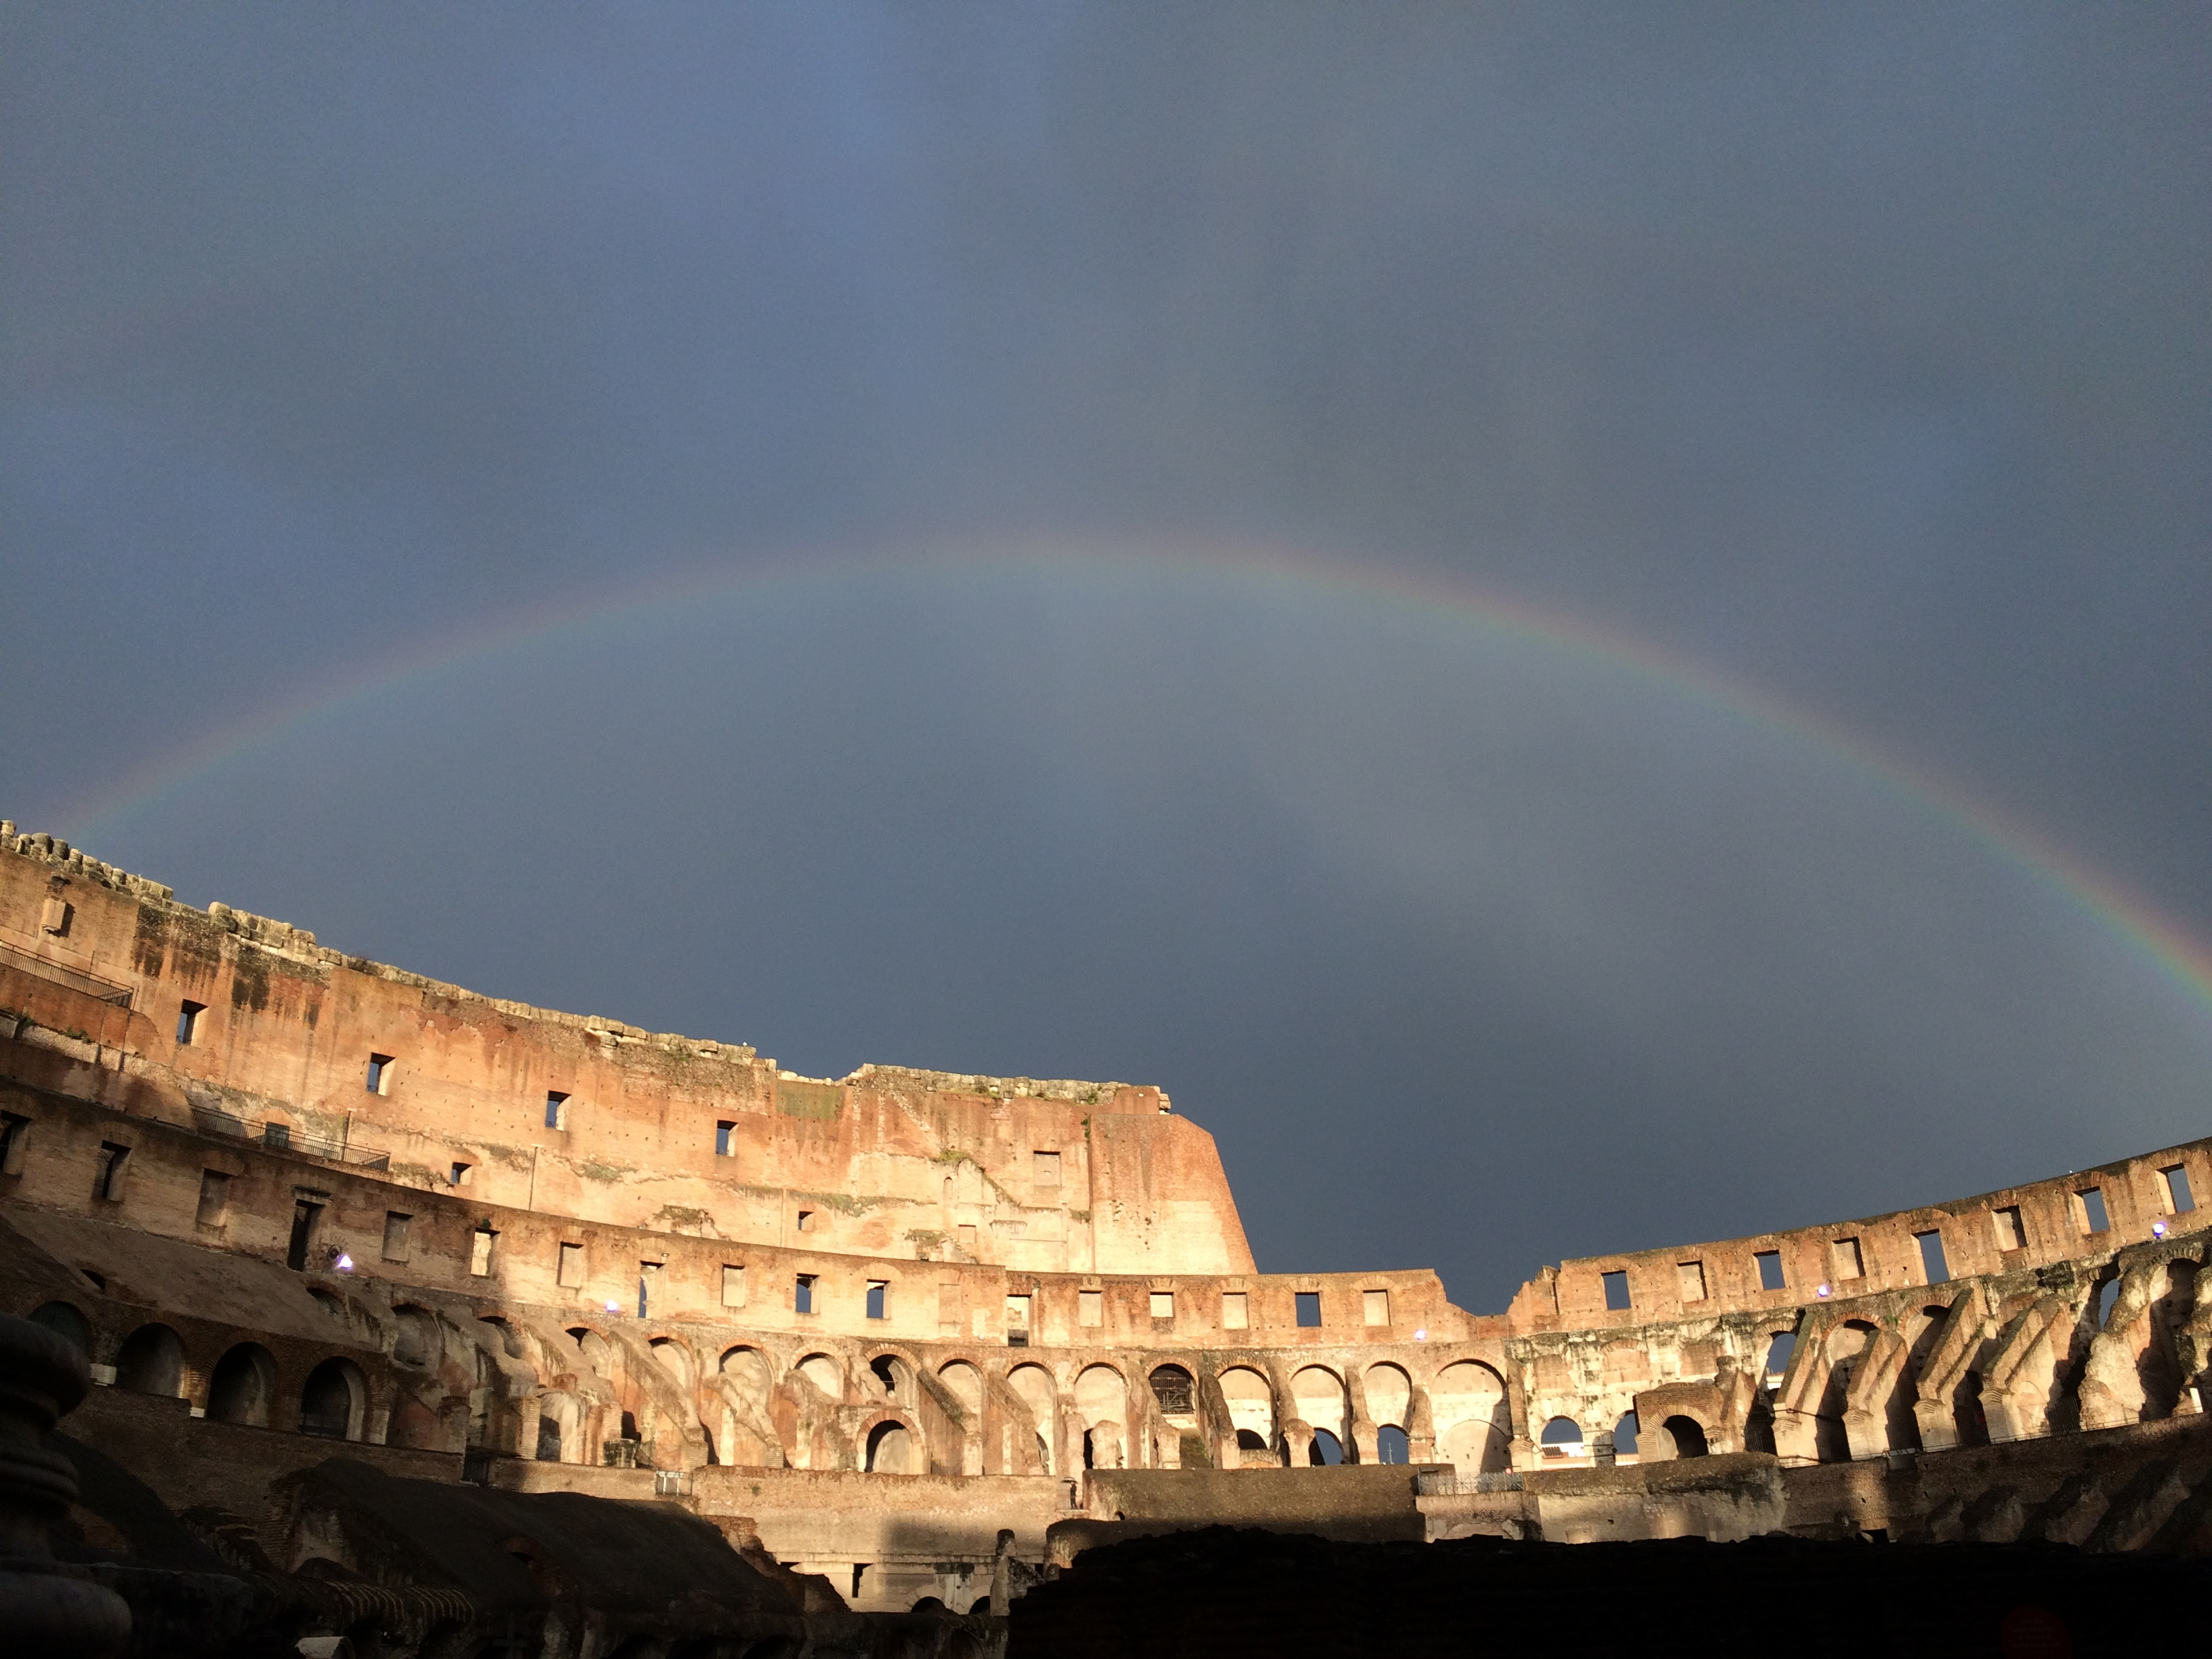 Rainbow above the Colosseum in Rome.  Sunshine and shadow in the foreground.  Cloud vapour streaking the sky.